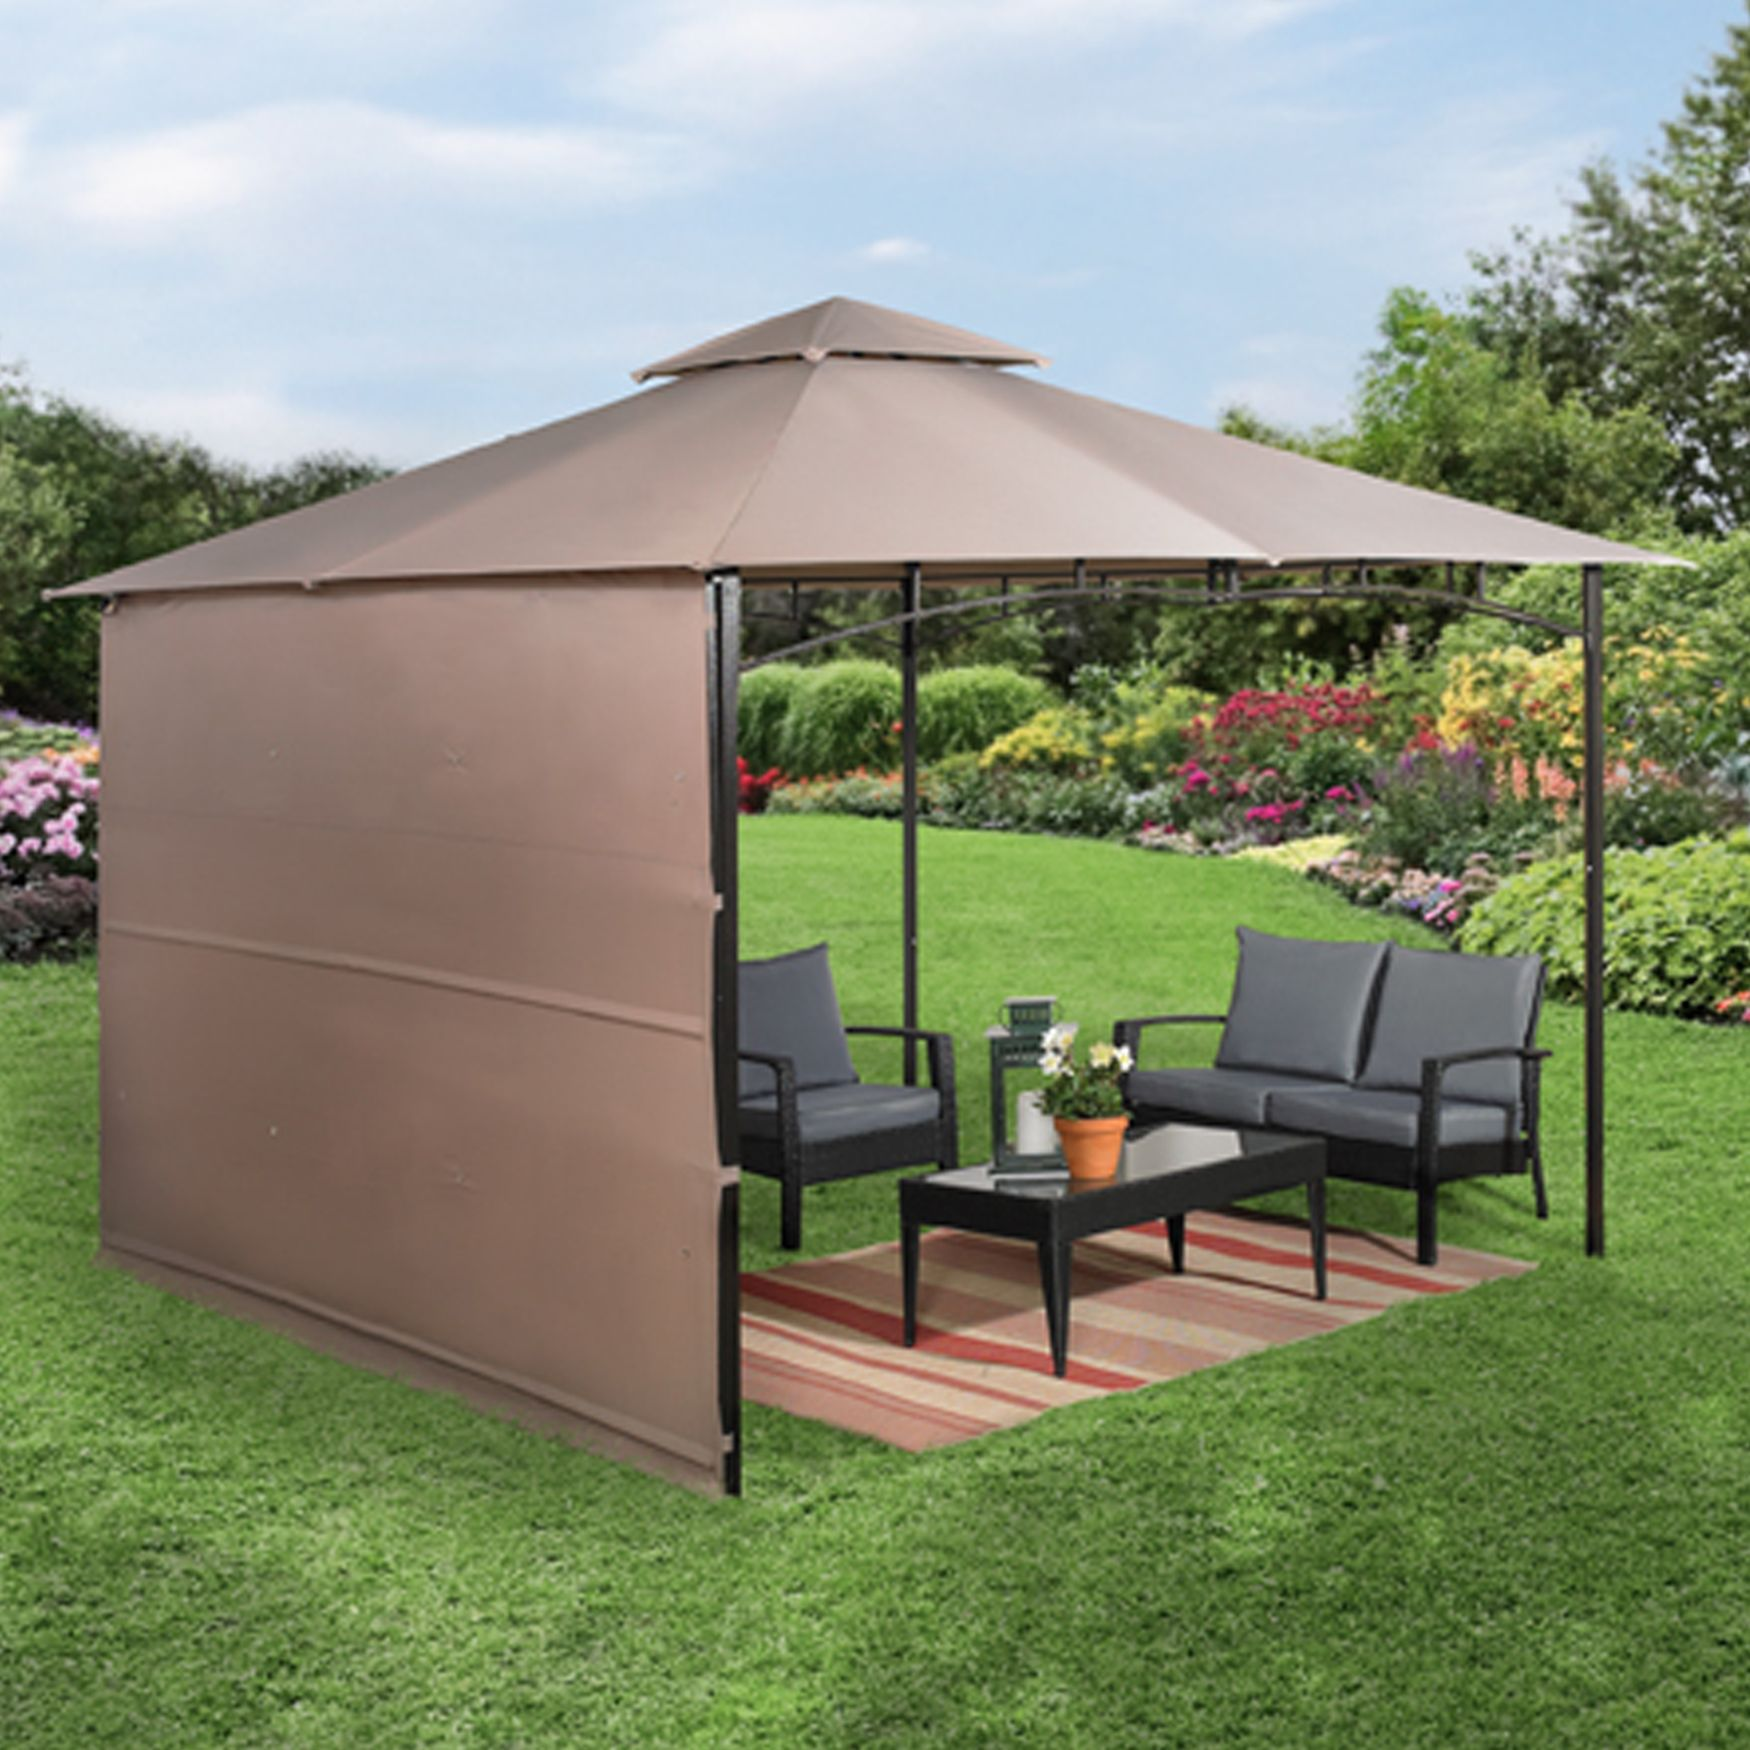 #135 10u0027x10u0027 Gazebo with Fold Out Extended Canopy & 135 10u0027x10u0027 Gazebo with Fold Out Extended Canopy | Designing Small ...